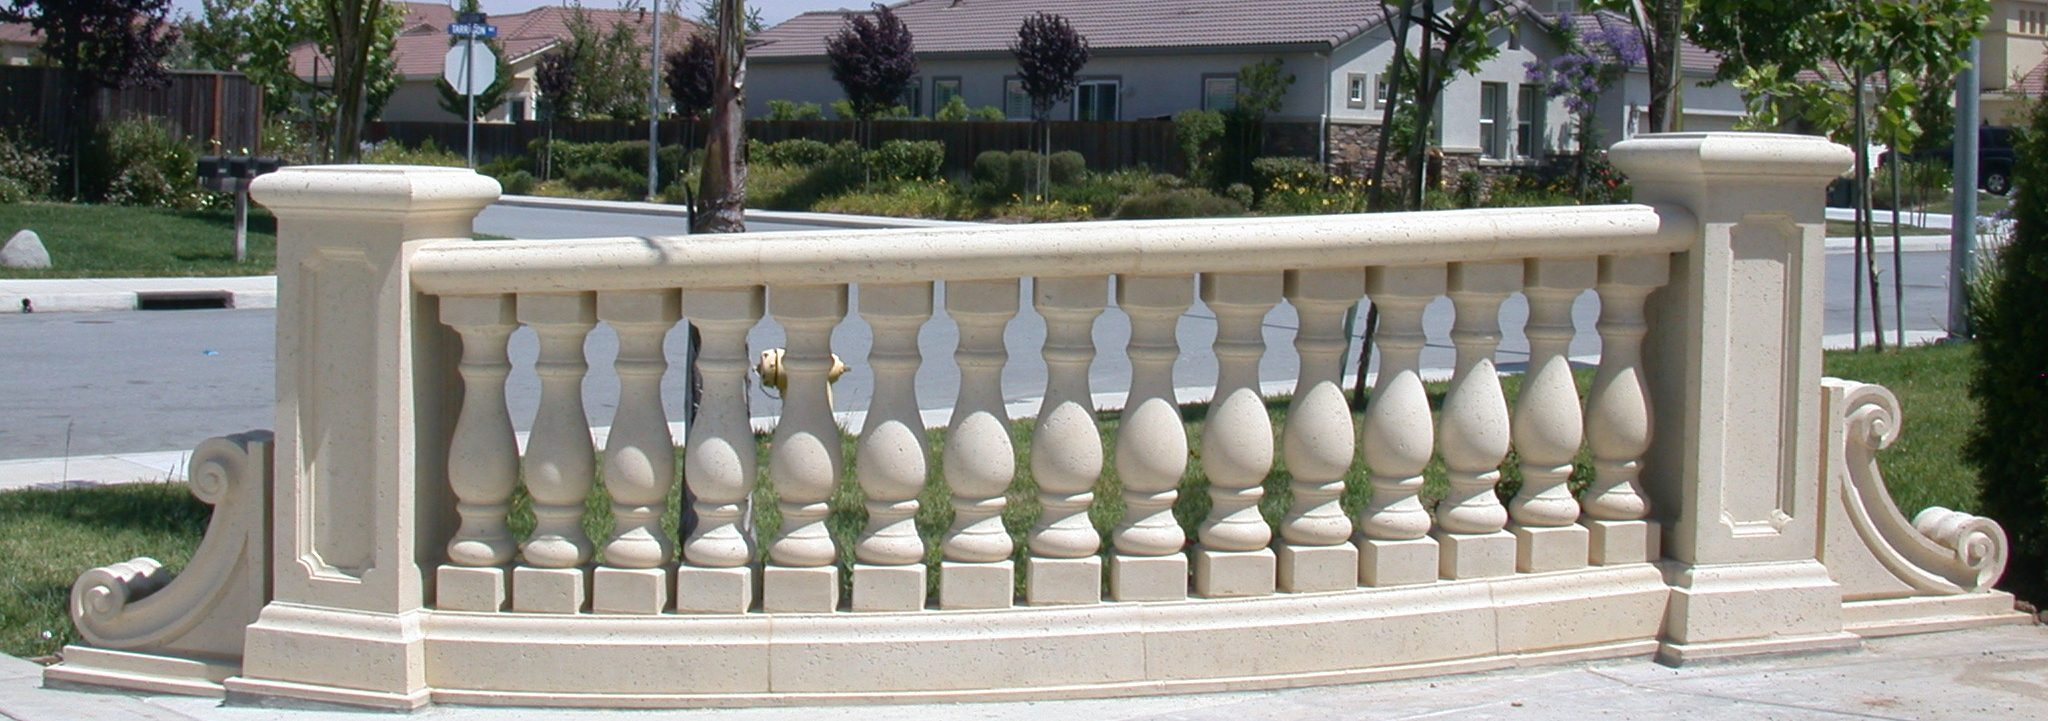 Balustrade Gallery